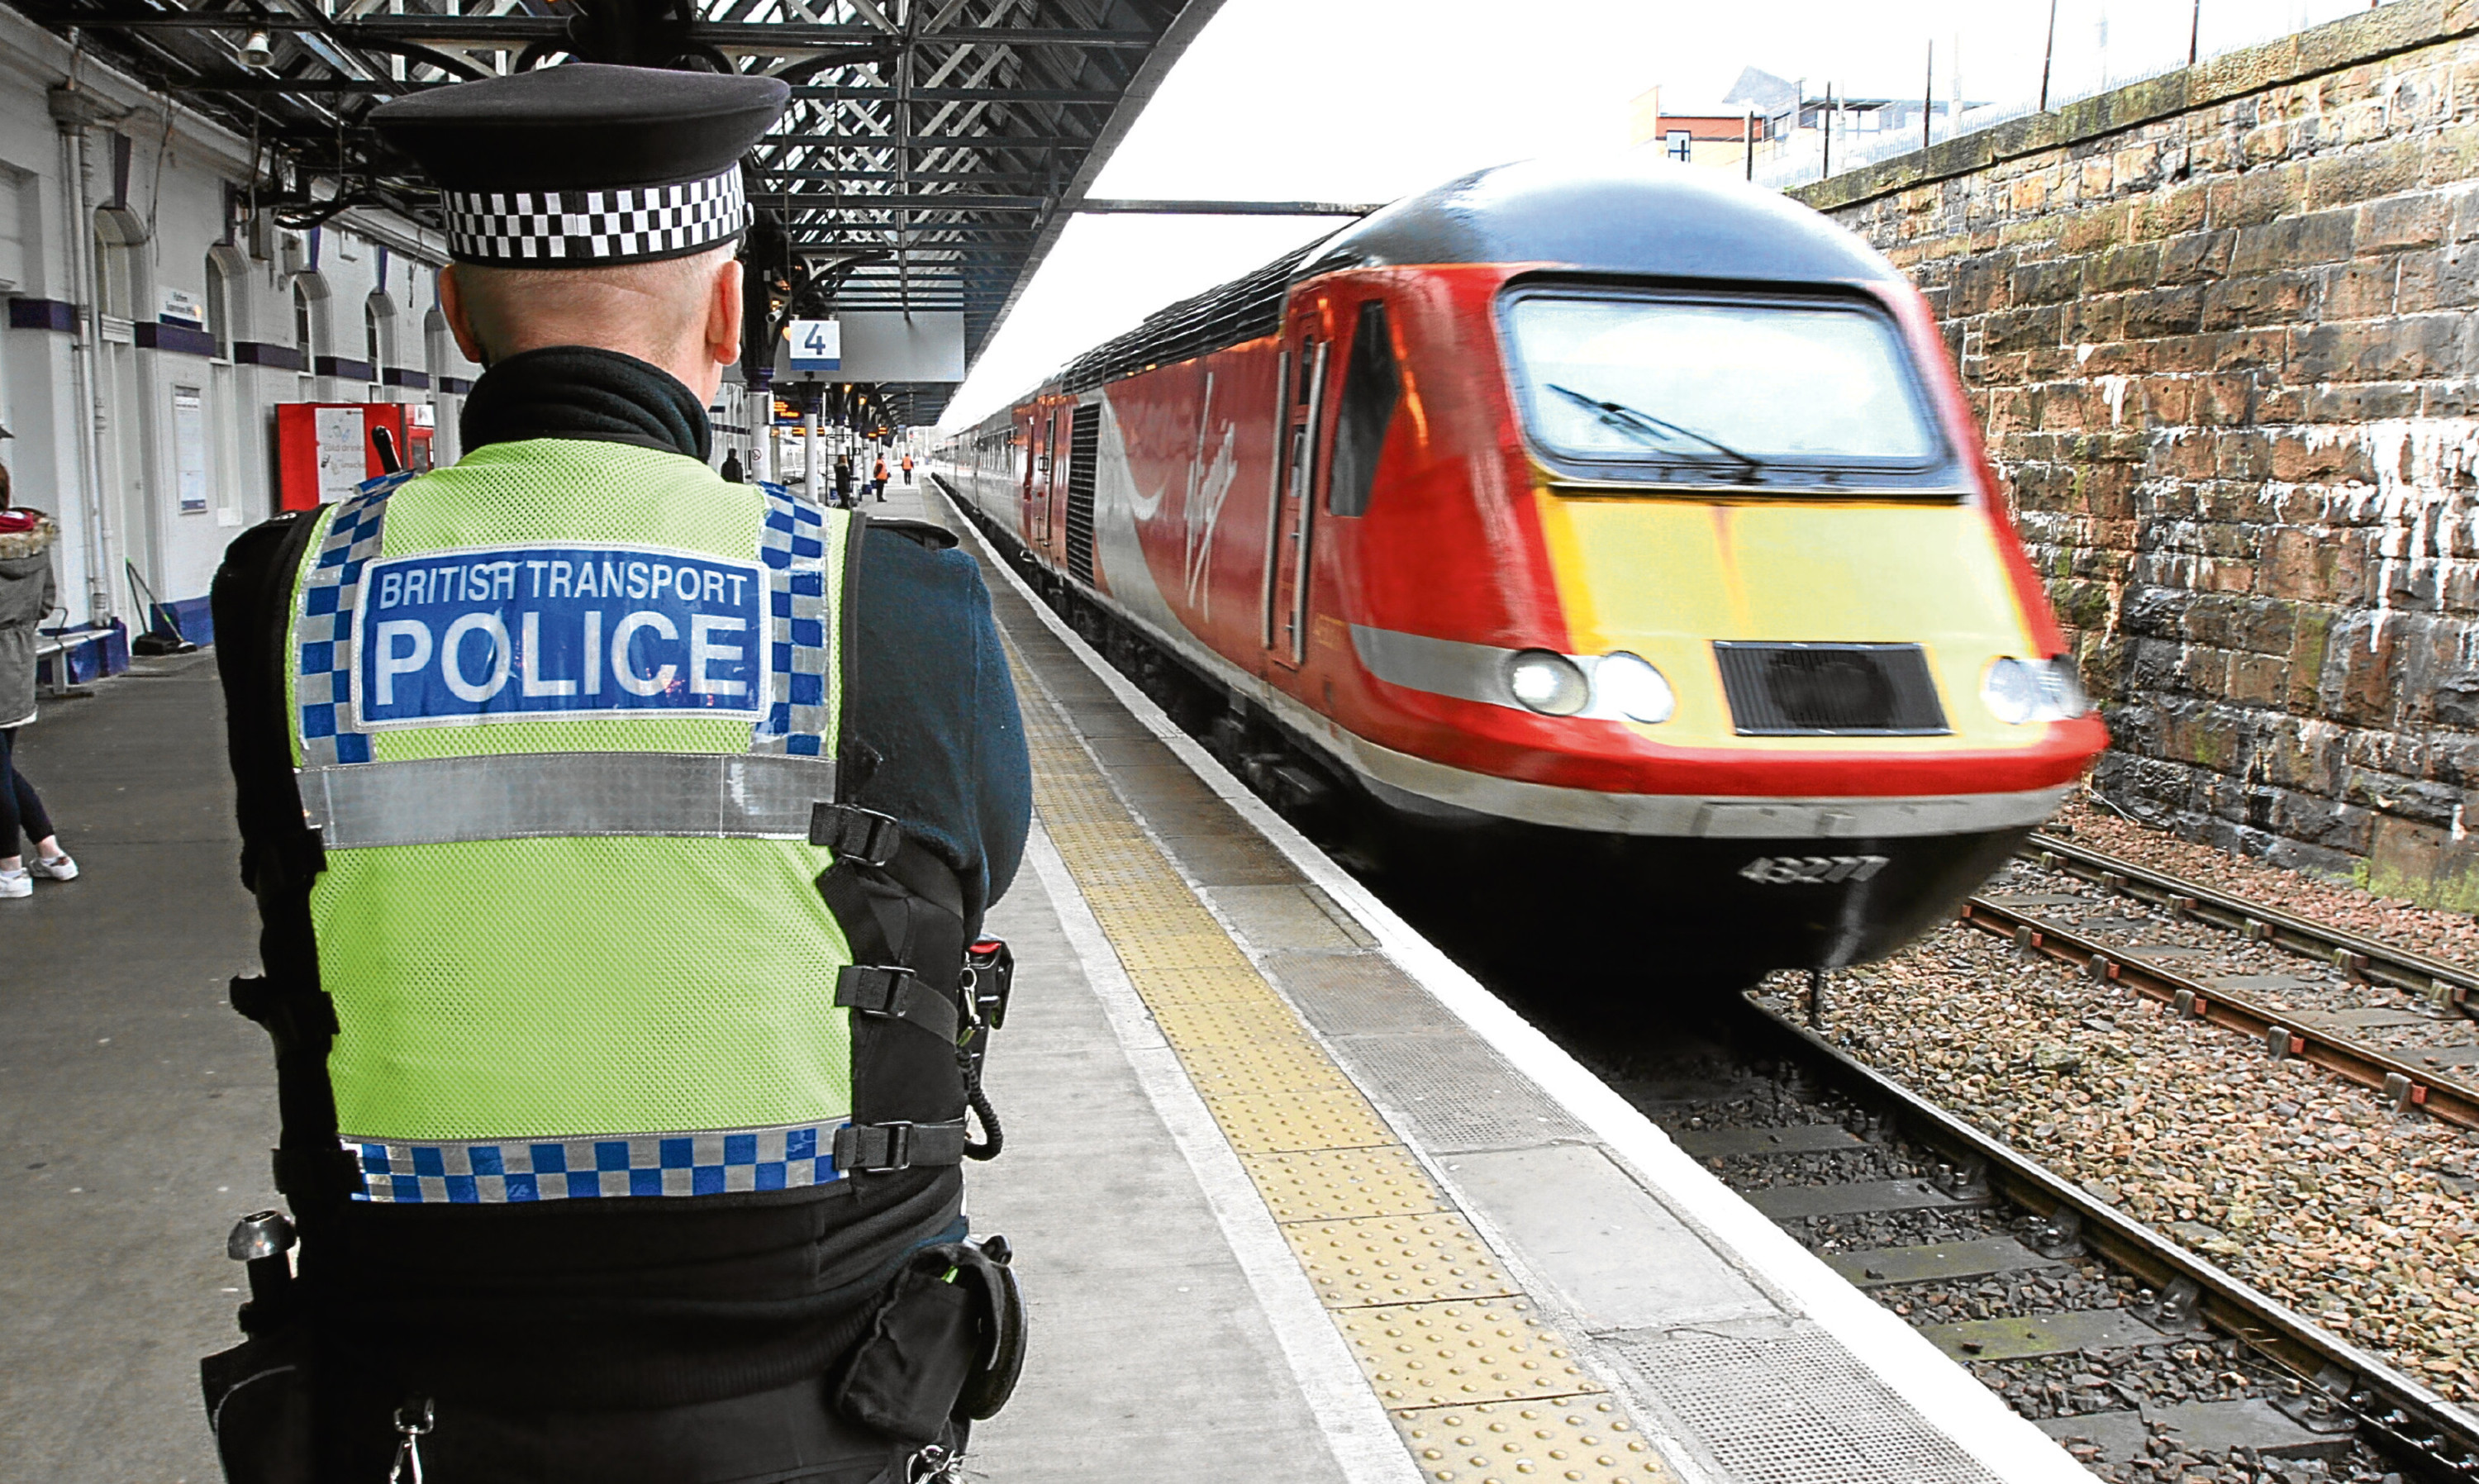 A British Transport Police officer on duty at Dundee railway station.